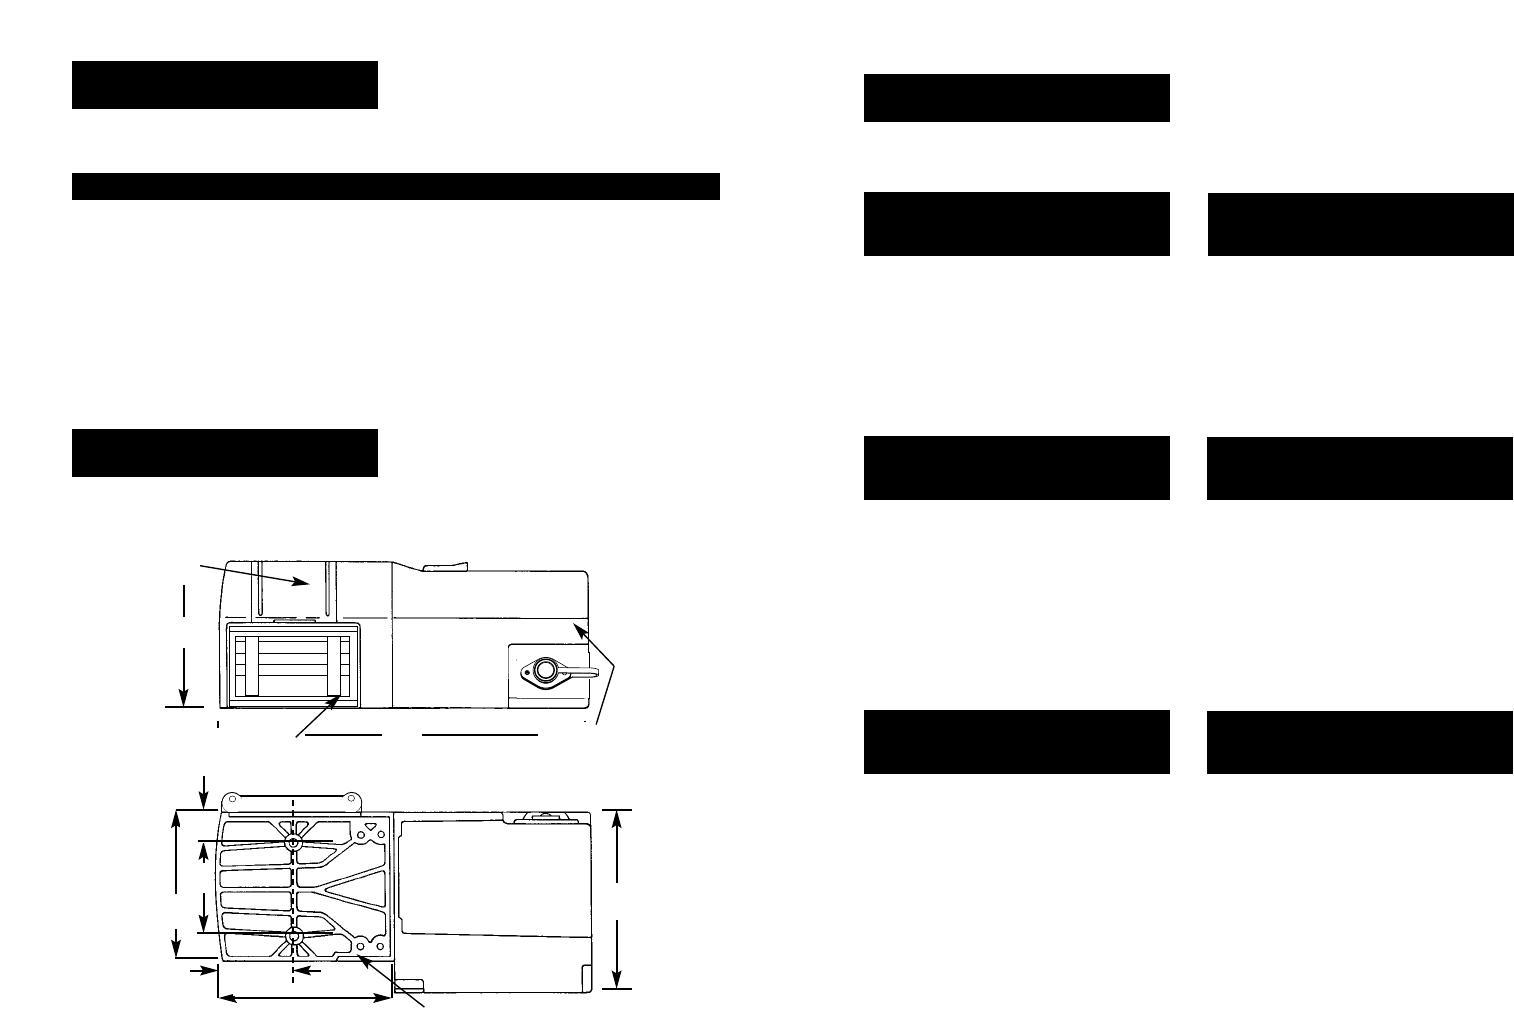 s3000 wiring diagram superwinch s3000 s4000 s5000 owners manual download page 3  superwinch s3000 s4000 s5000 owners